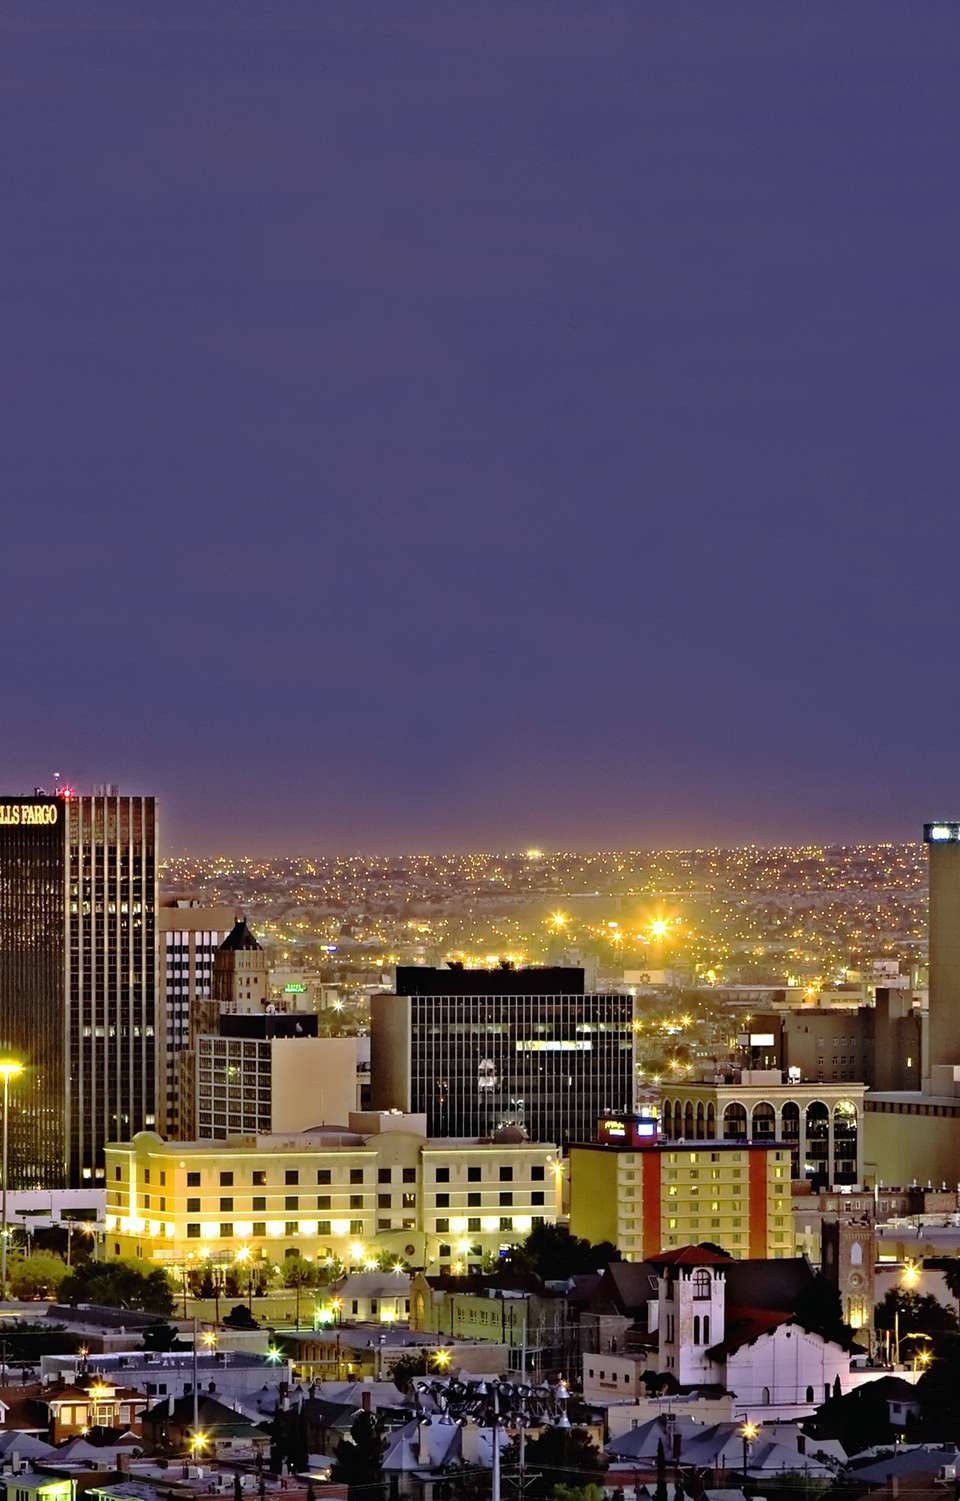 Nighttime view of El Paso, Texas with many lights and buildings